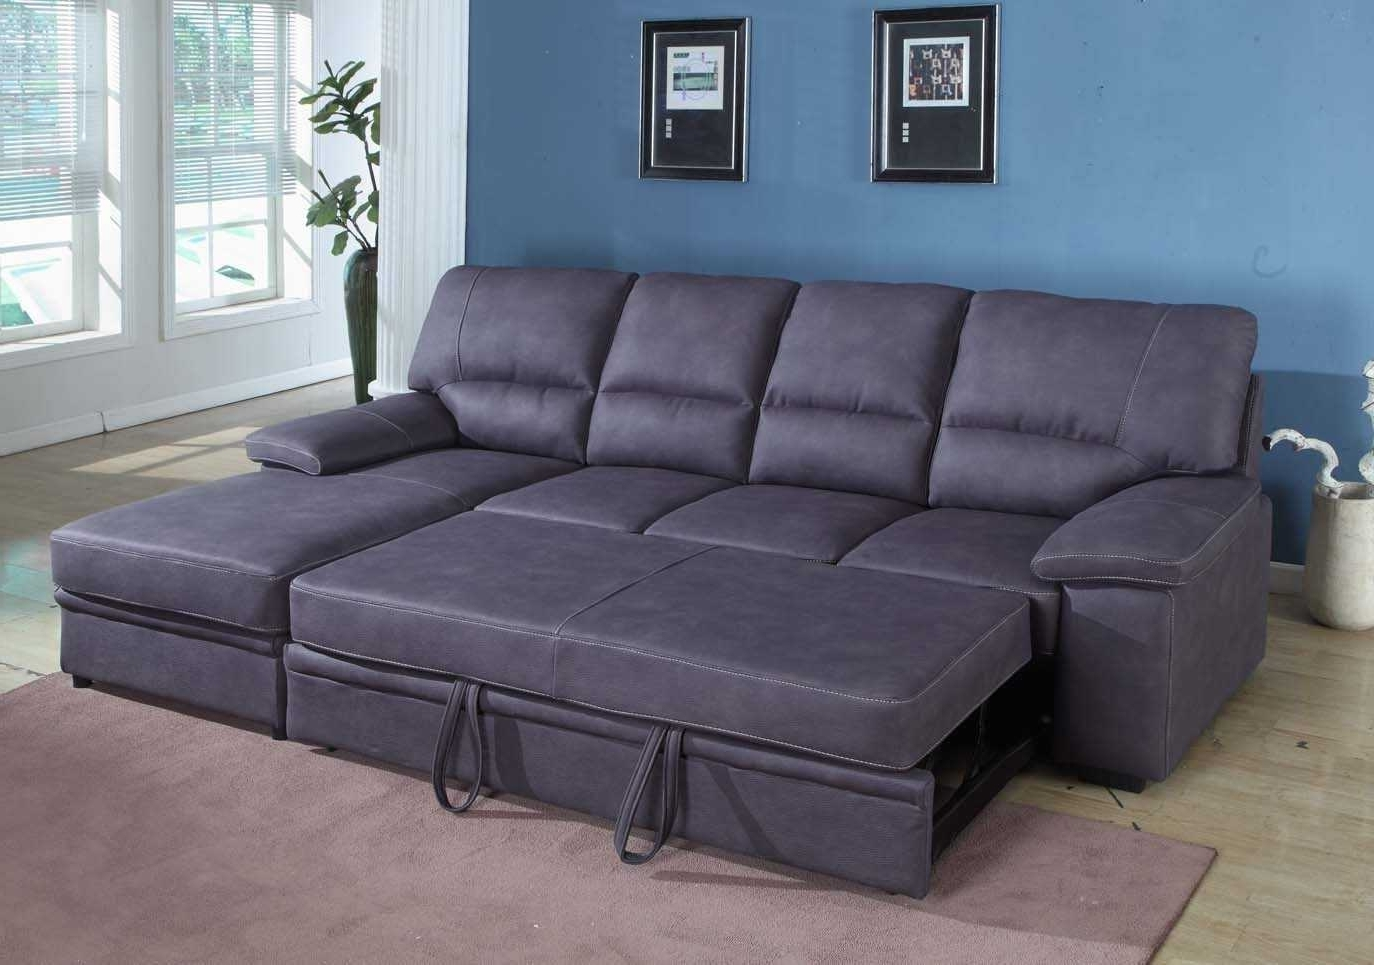 Trendy Gray Sectional Sofa With Chaise ~ Americanfurnituremanufacturer Throughout Grey Sectional Sofas With Chaise (View 7 of 15)